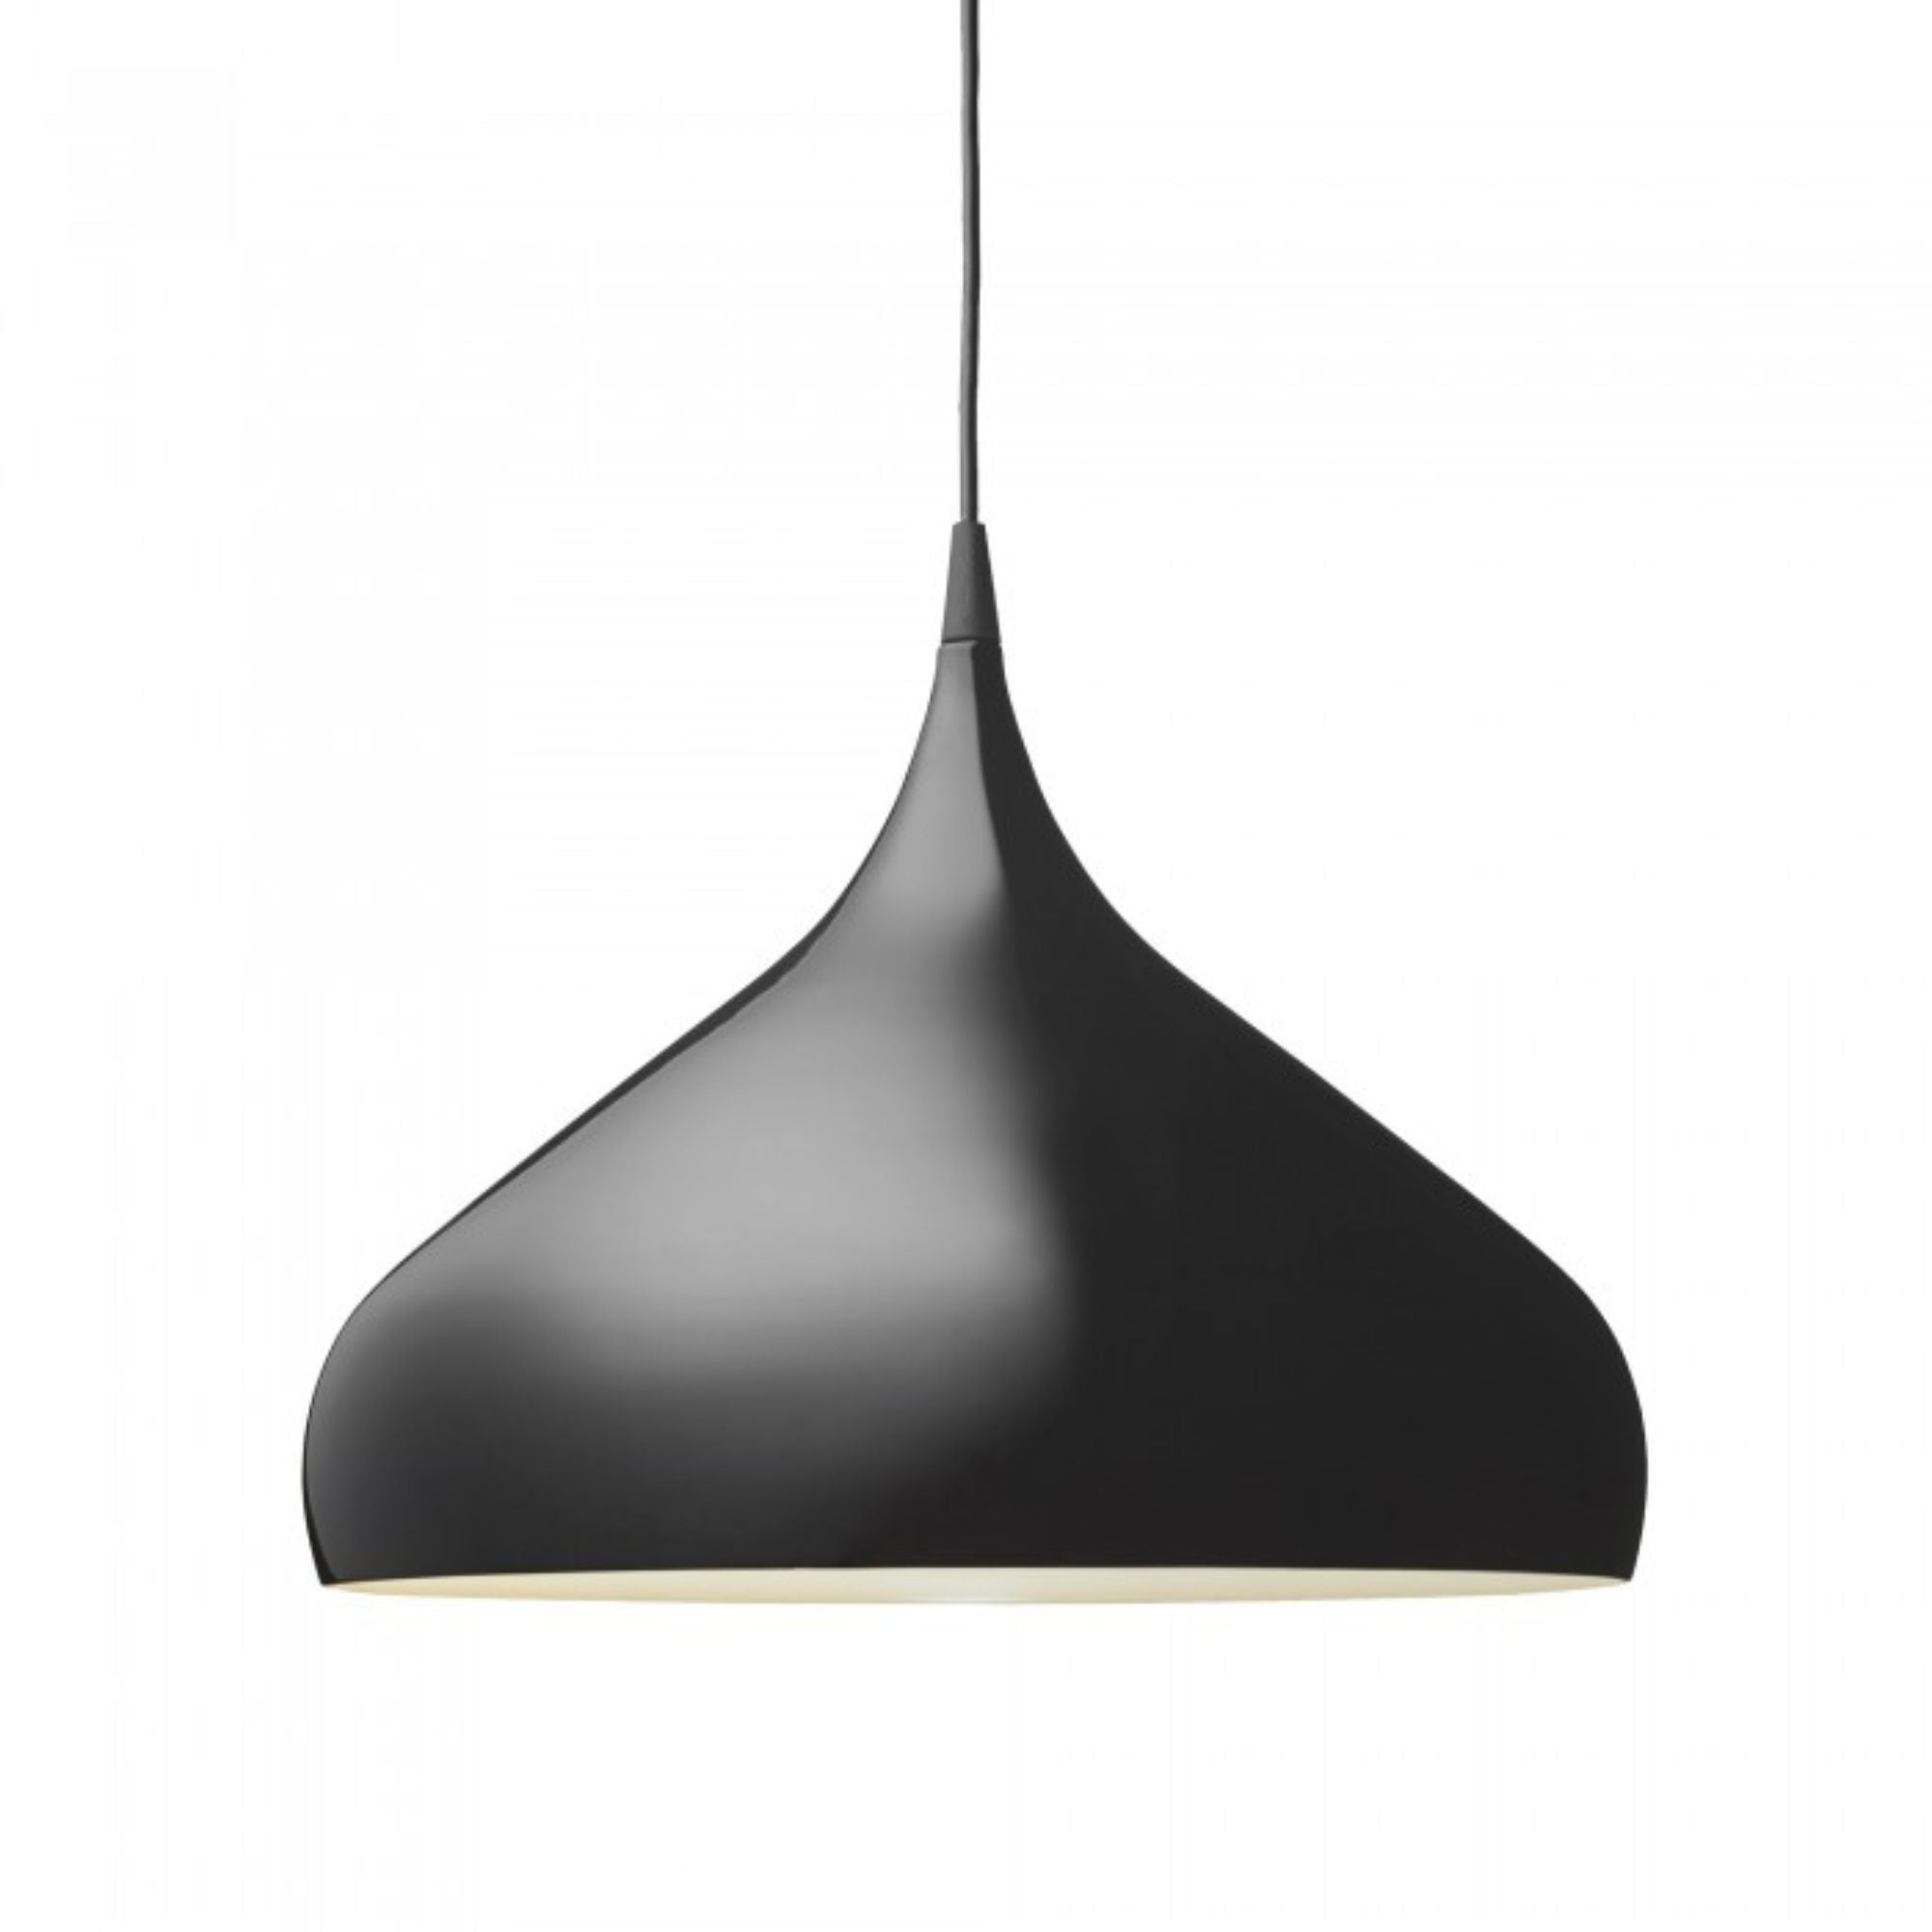 &Tradition BH2 Spinning pendant lamp, matt black